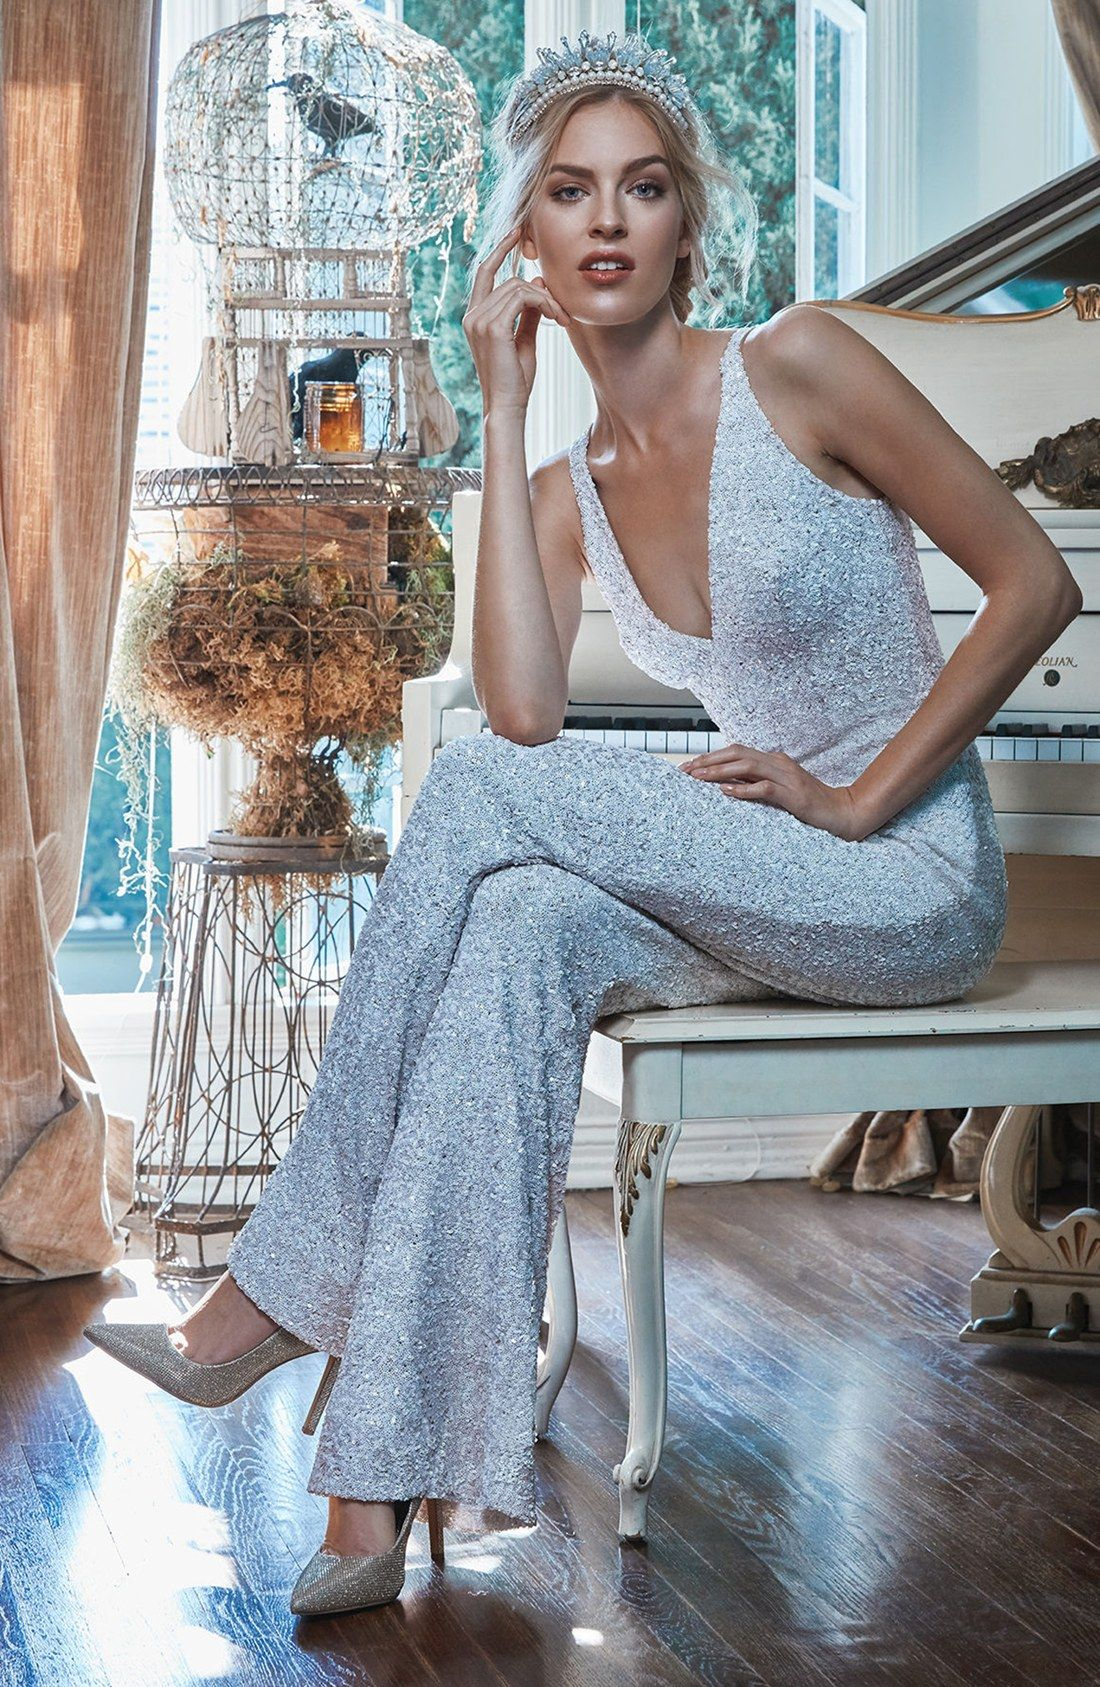 Charlie Sequin Jumpsuit in white, gold, brown and black | Nordstrom ...